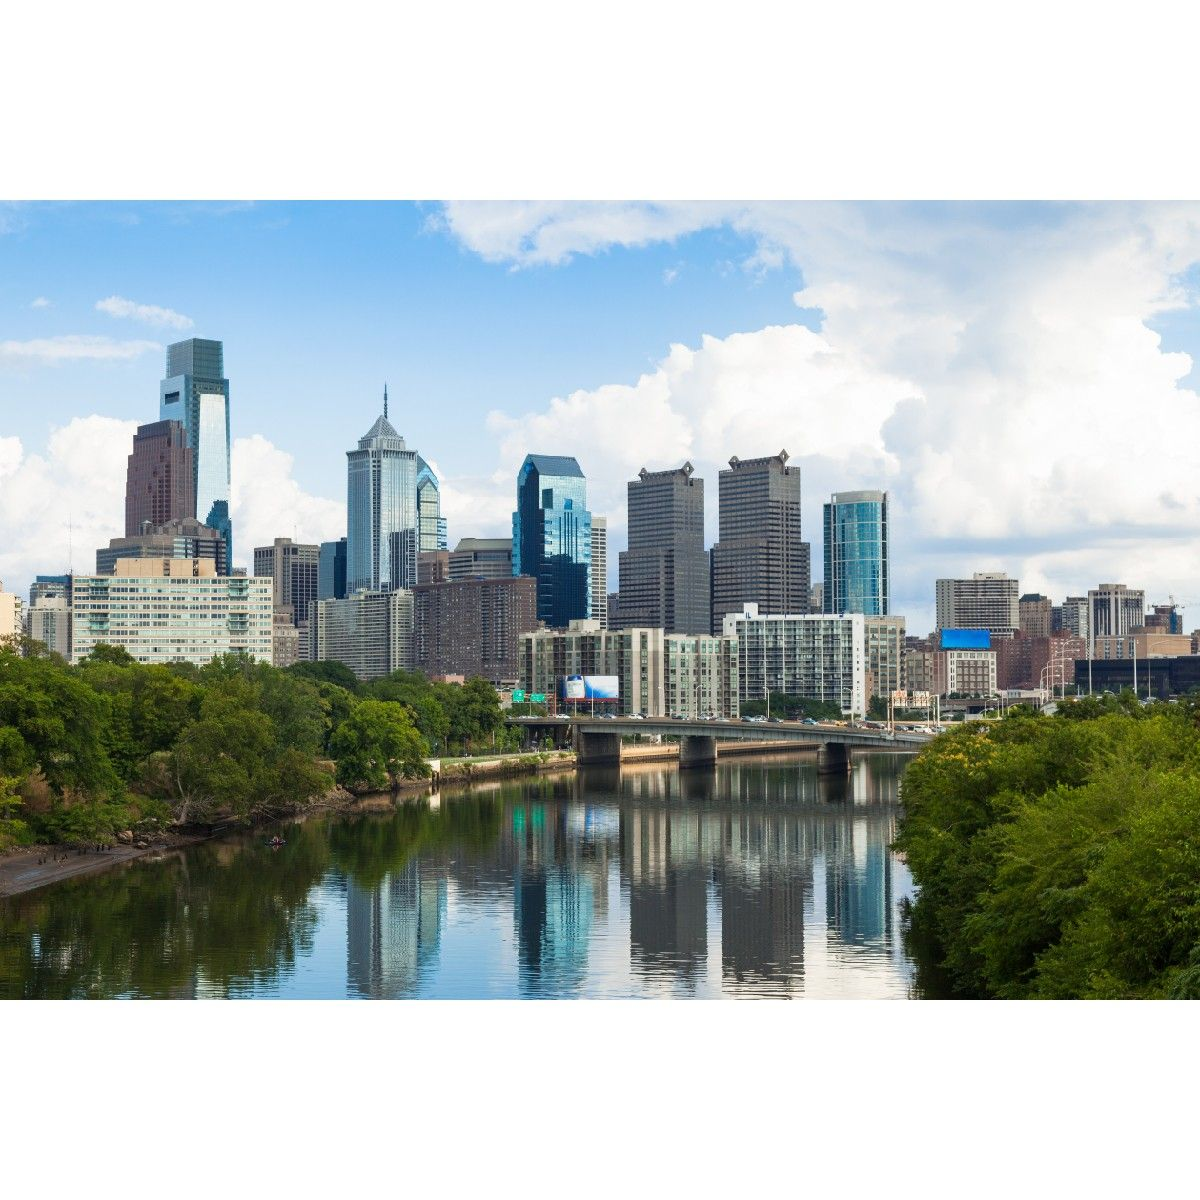 Philadelphia City View Wall Mural Architecture Cityscapes The Philadelphia skyline shimmers against a  sc 1 st  Pinterest & Philadelphia City View Wall Mural: Architecture: Cityscapes: The ...